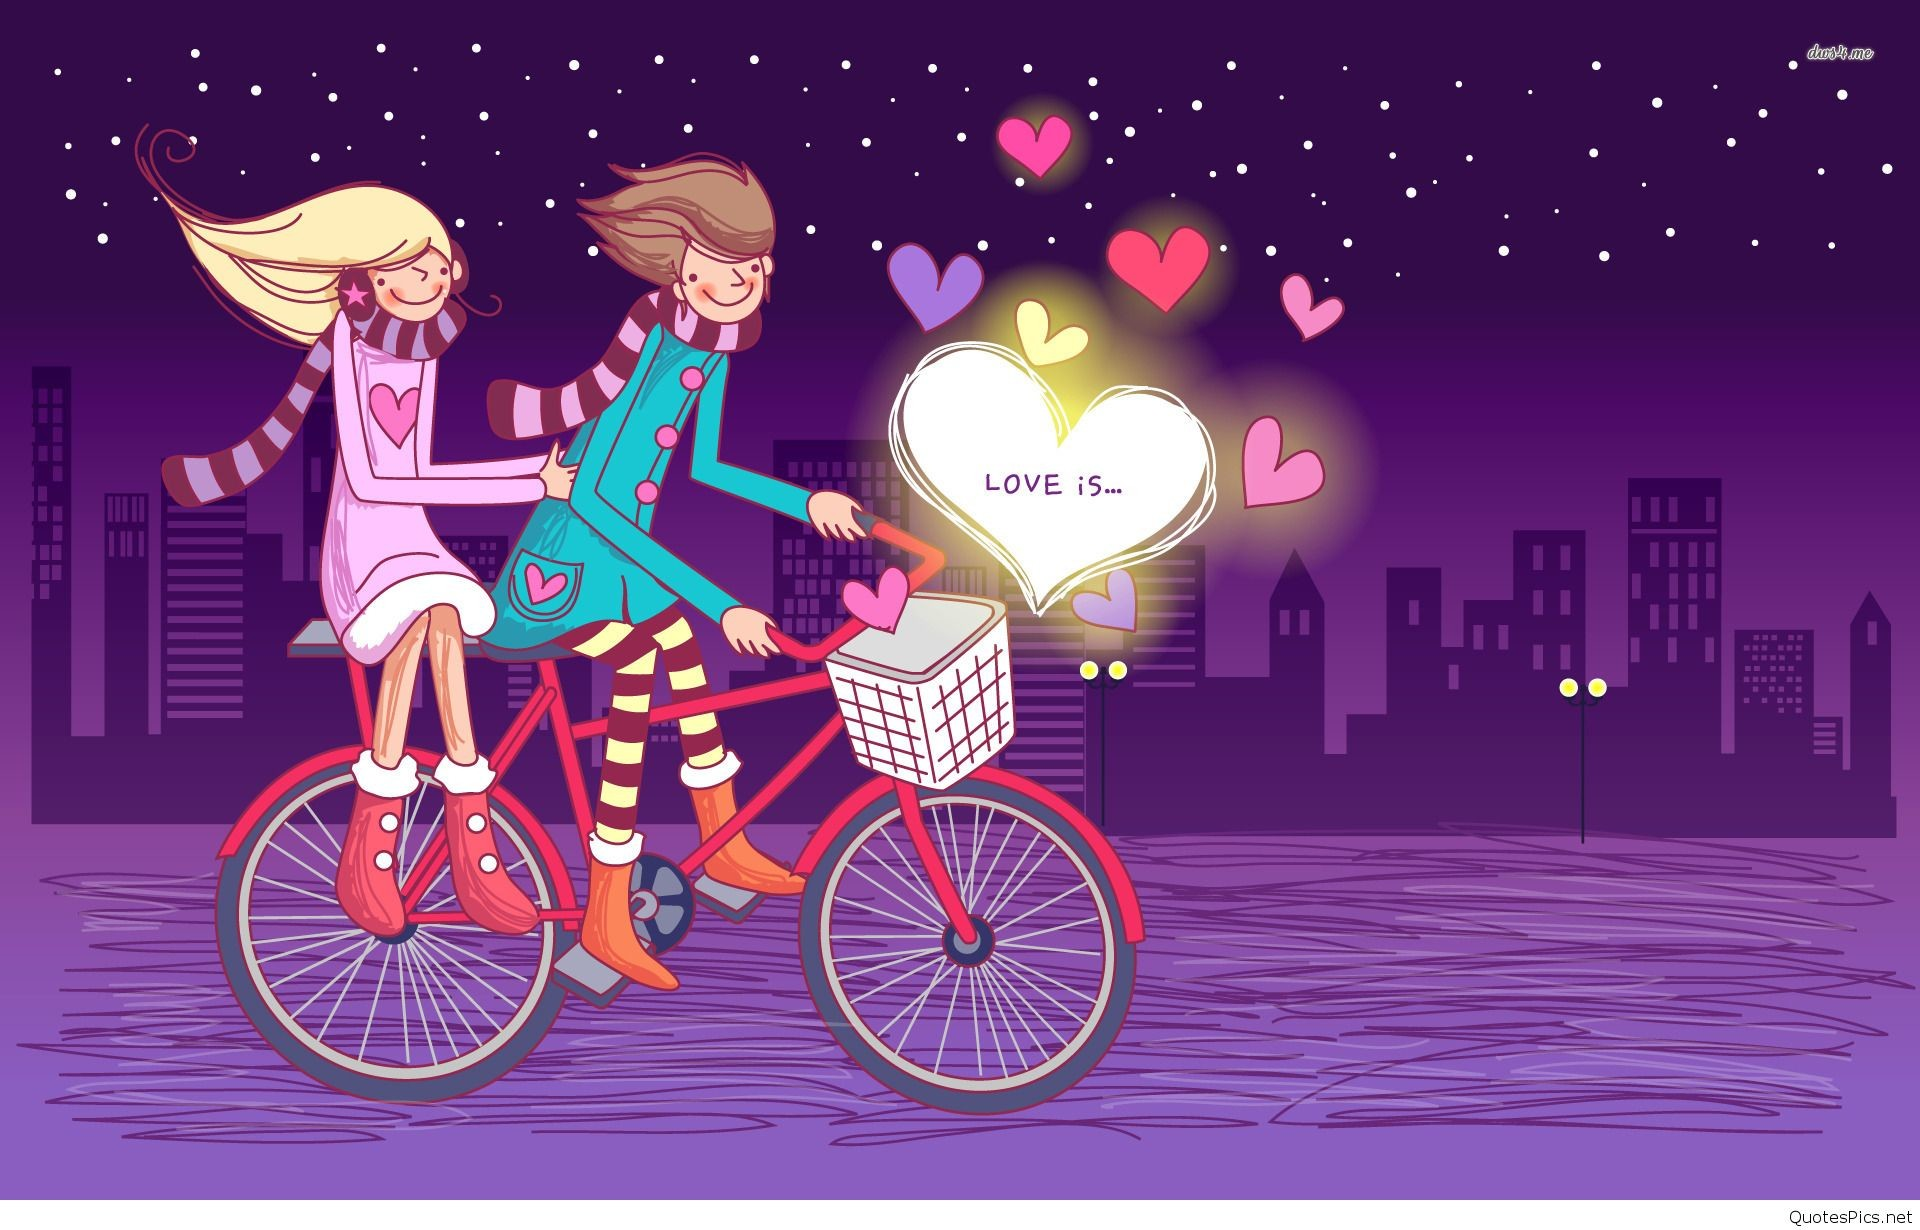 valentines-day-animated-cartoon-wallpaper-free-hd-desktop